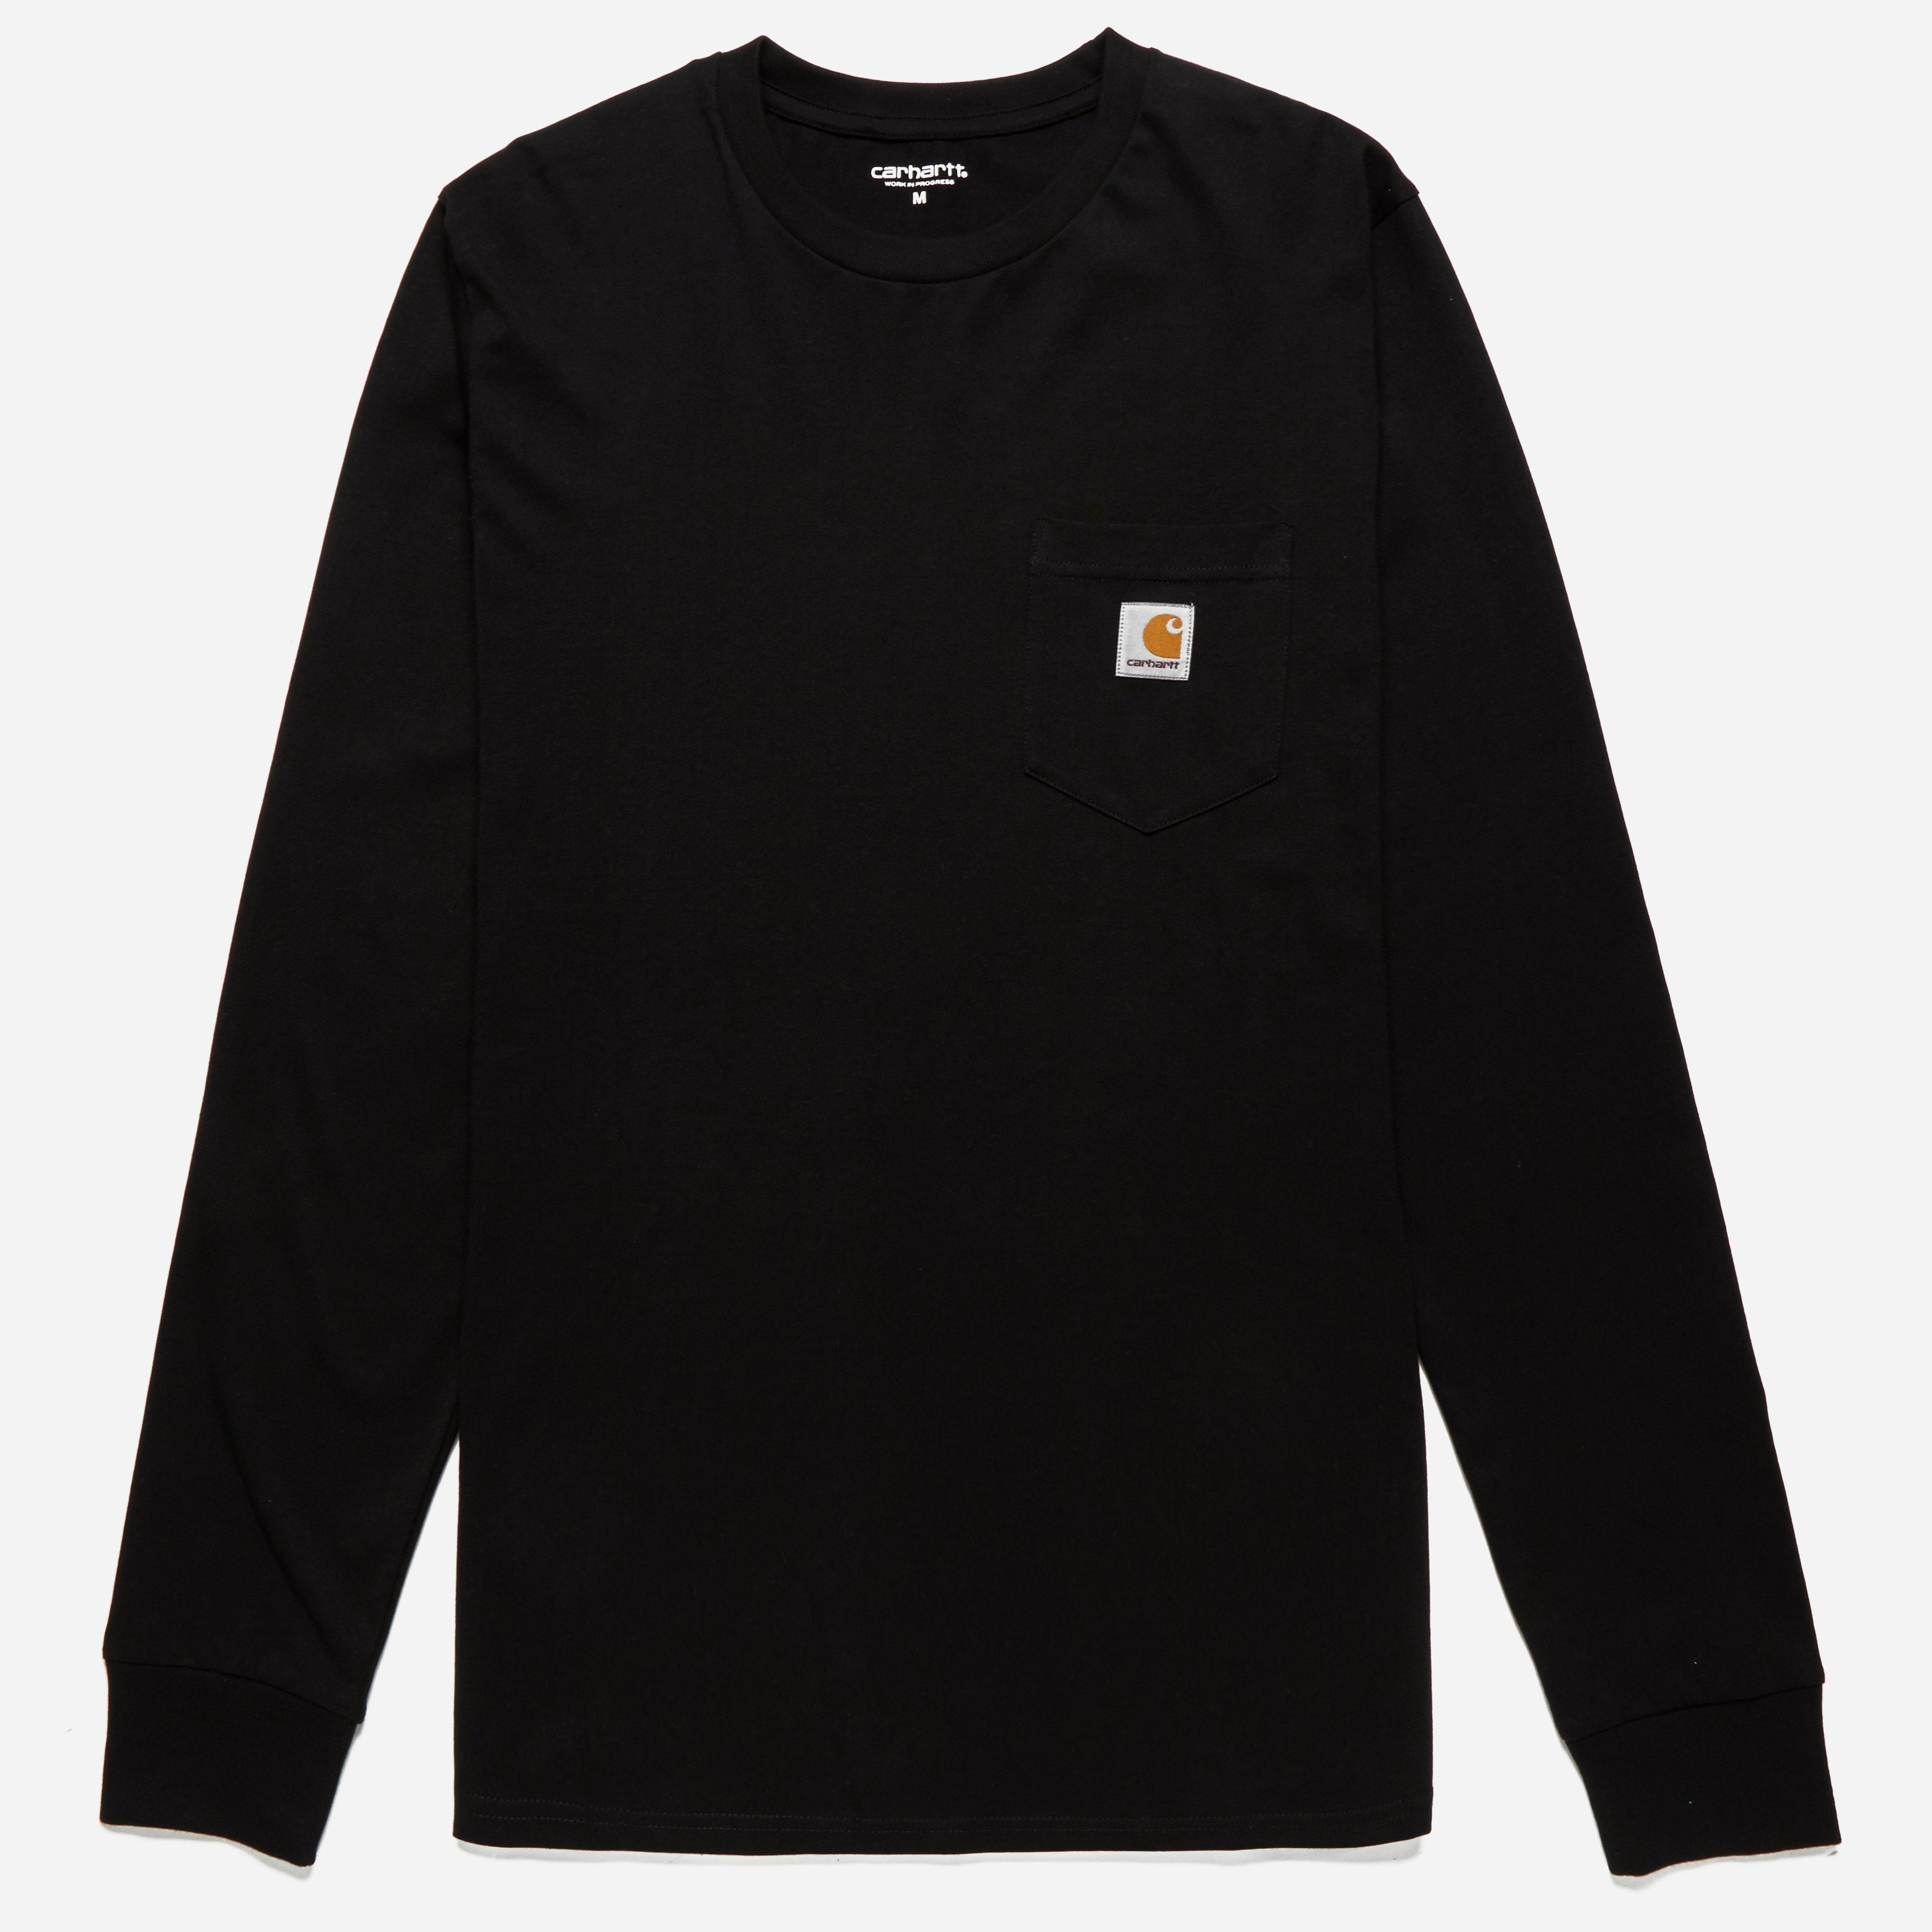 Carhartt Long Sleeve Pocket T-shirt